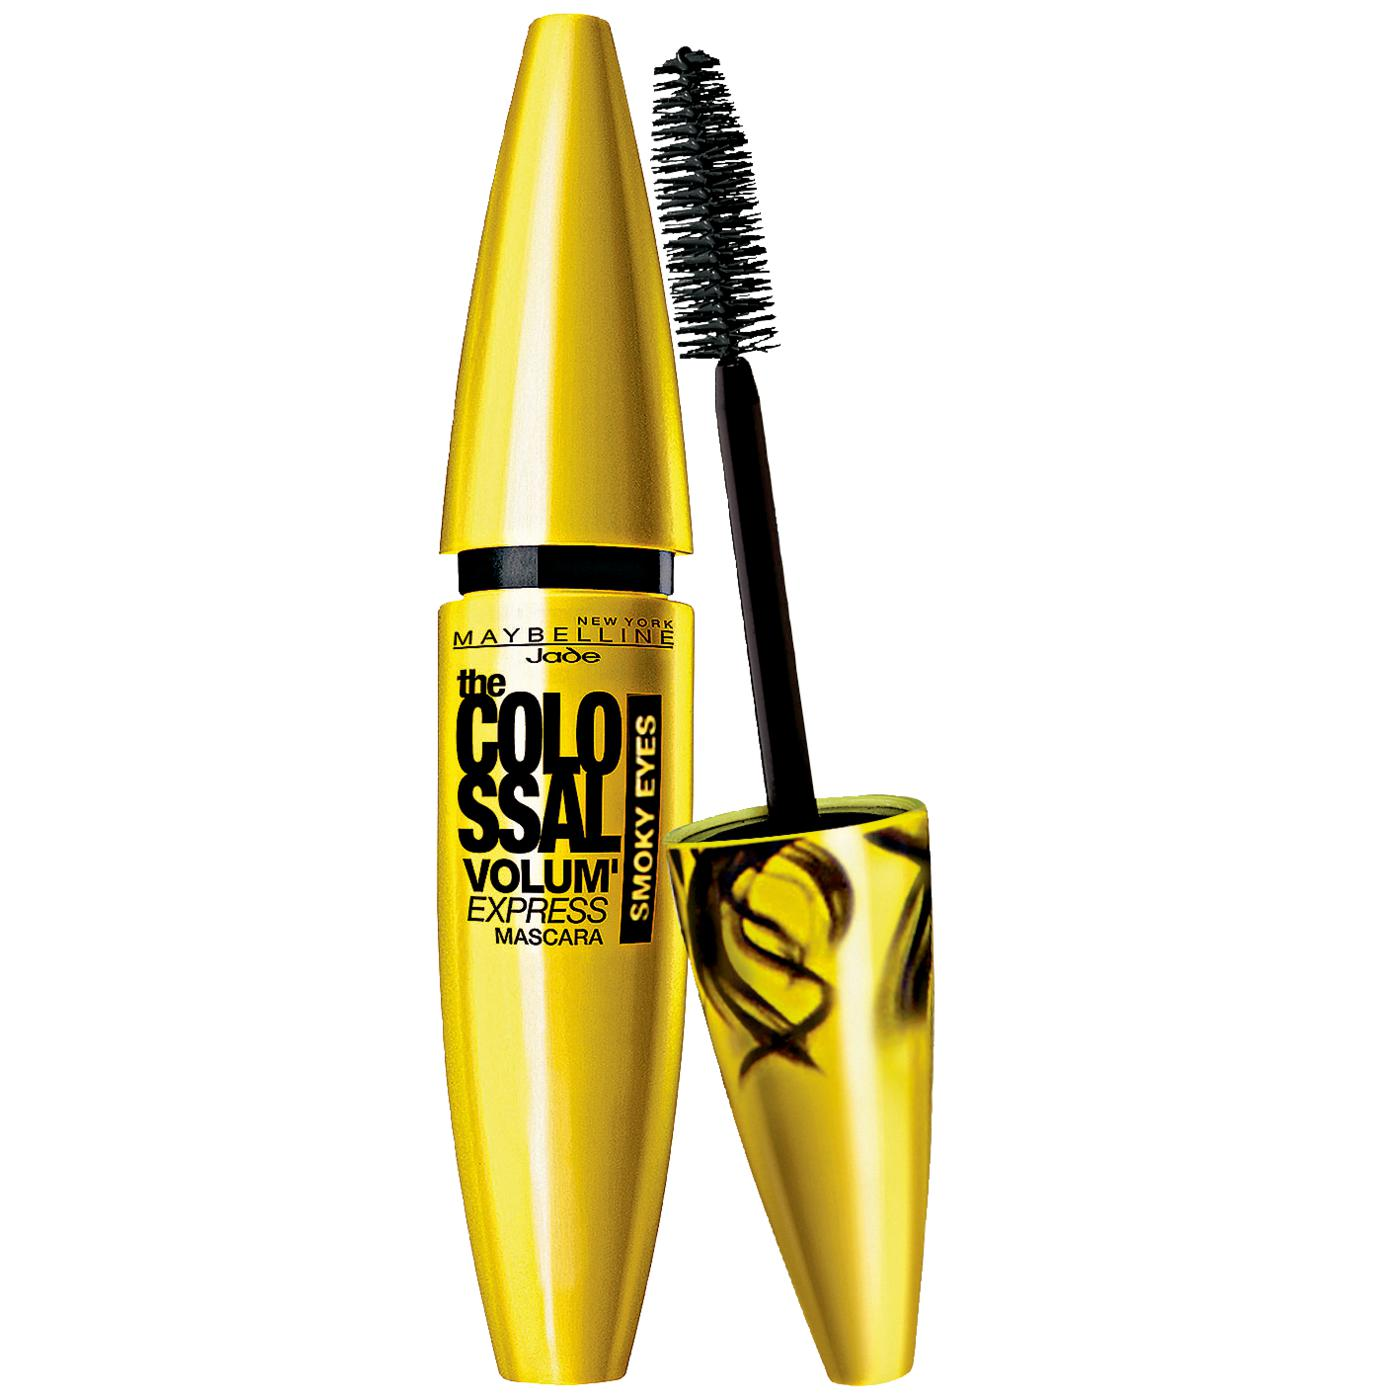 maybelline colossal smoky eyes mascara review